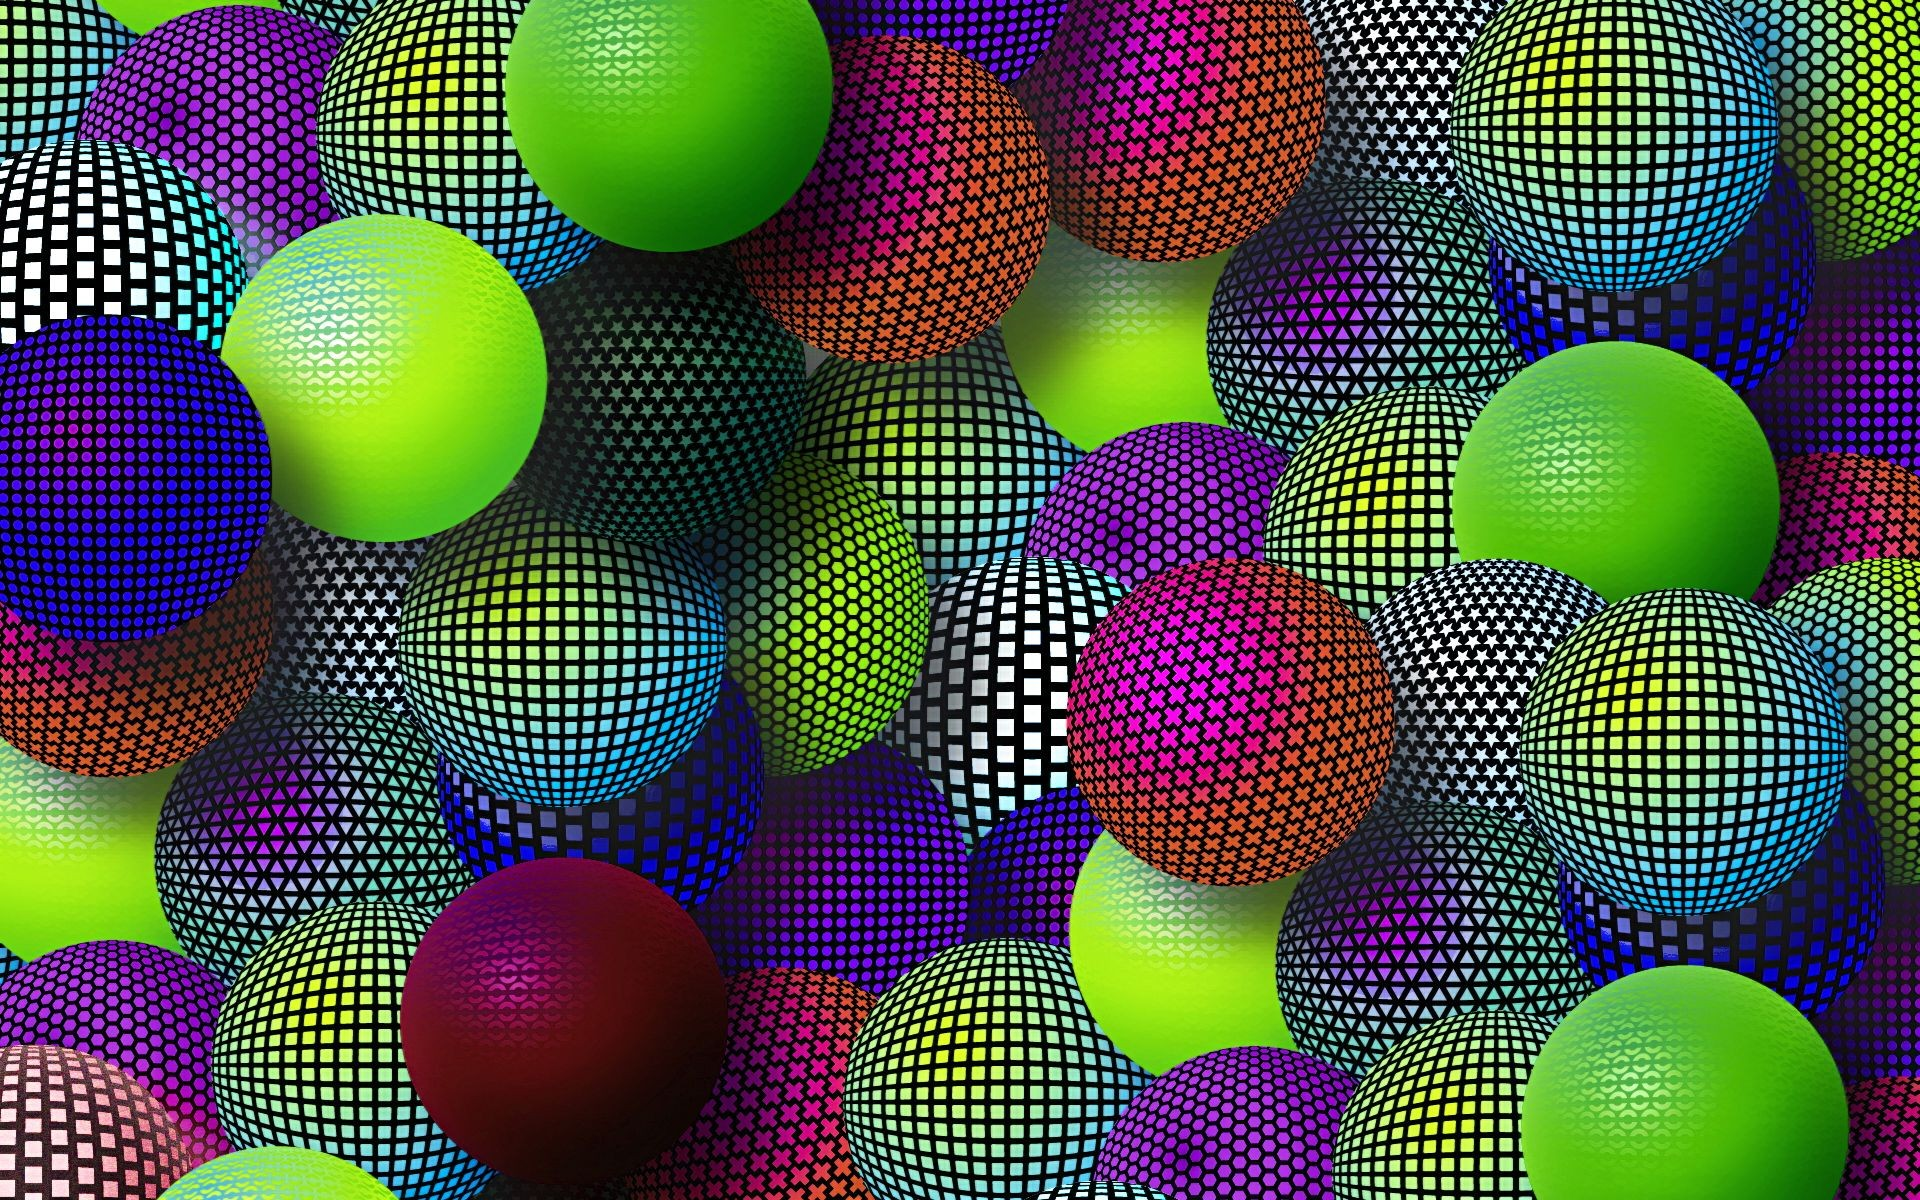 Bolas de colores digitales - 1920x1200